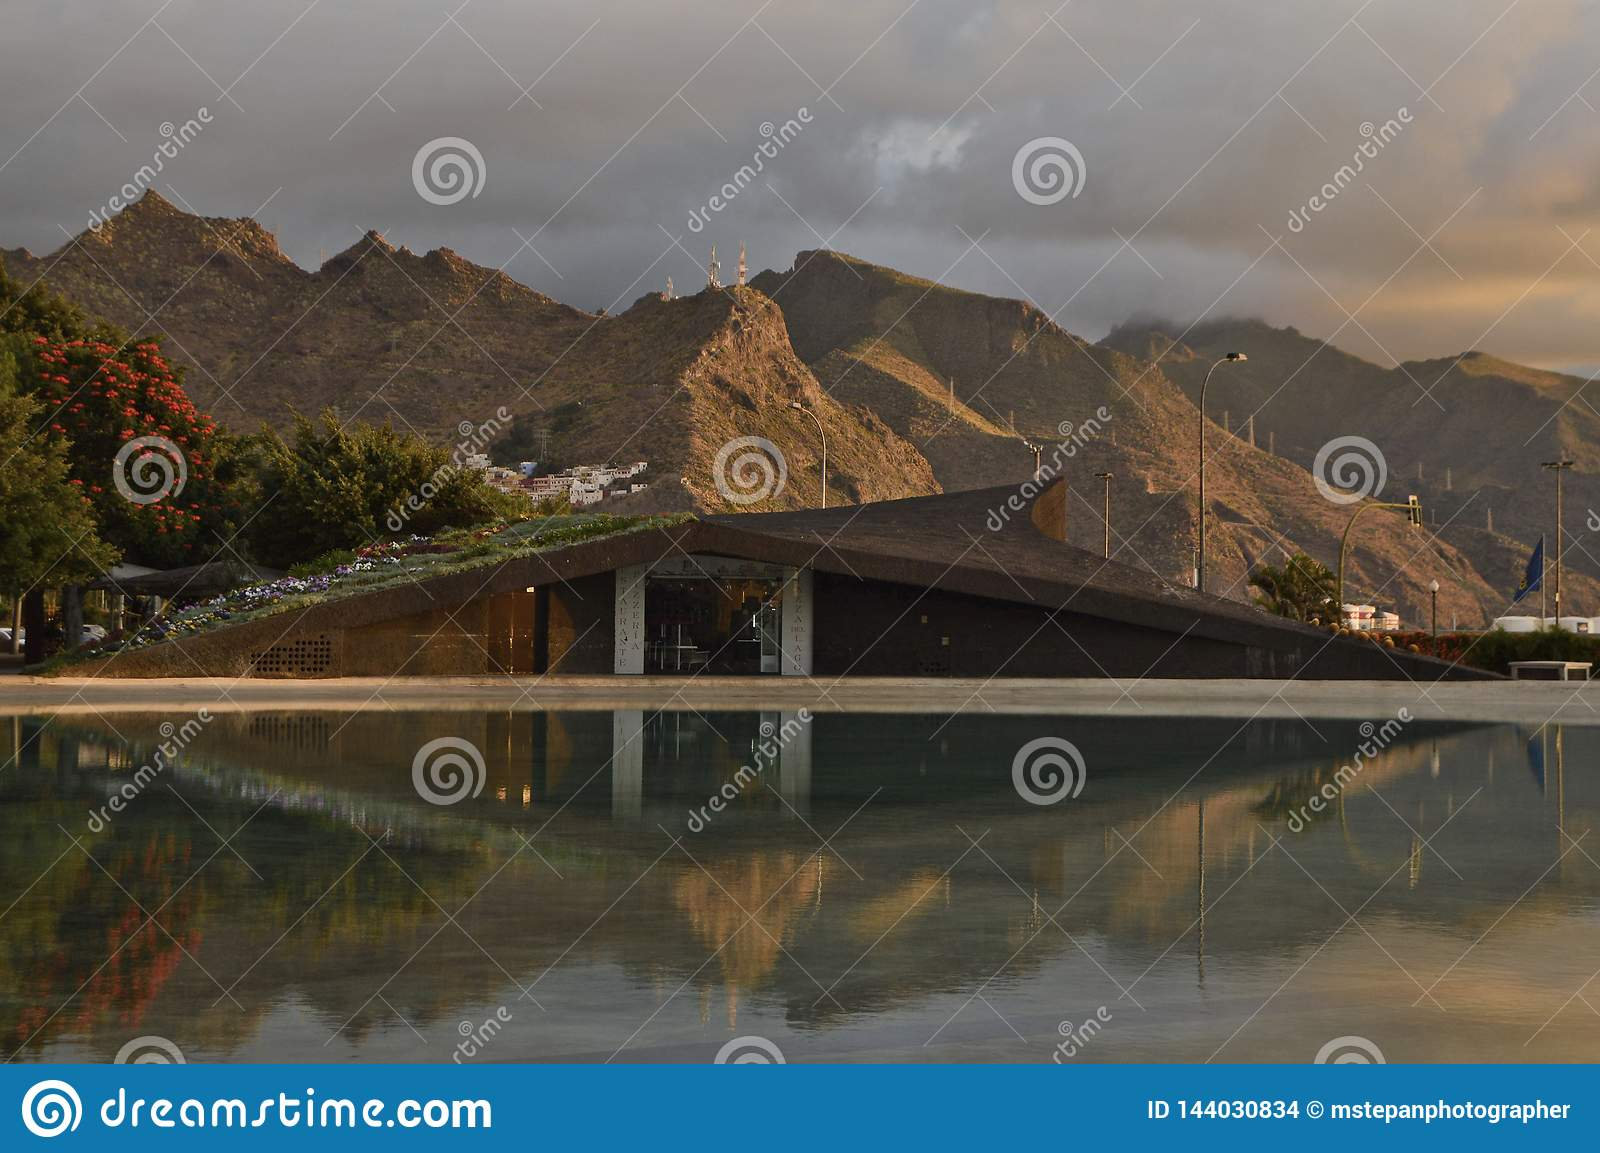 Volcanic mountains and modern building Tenerife Canary Islands